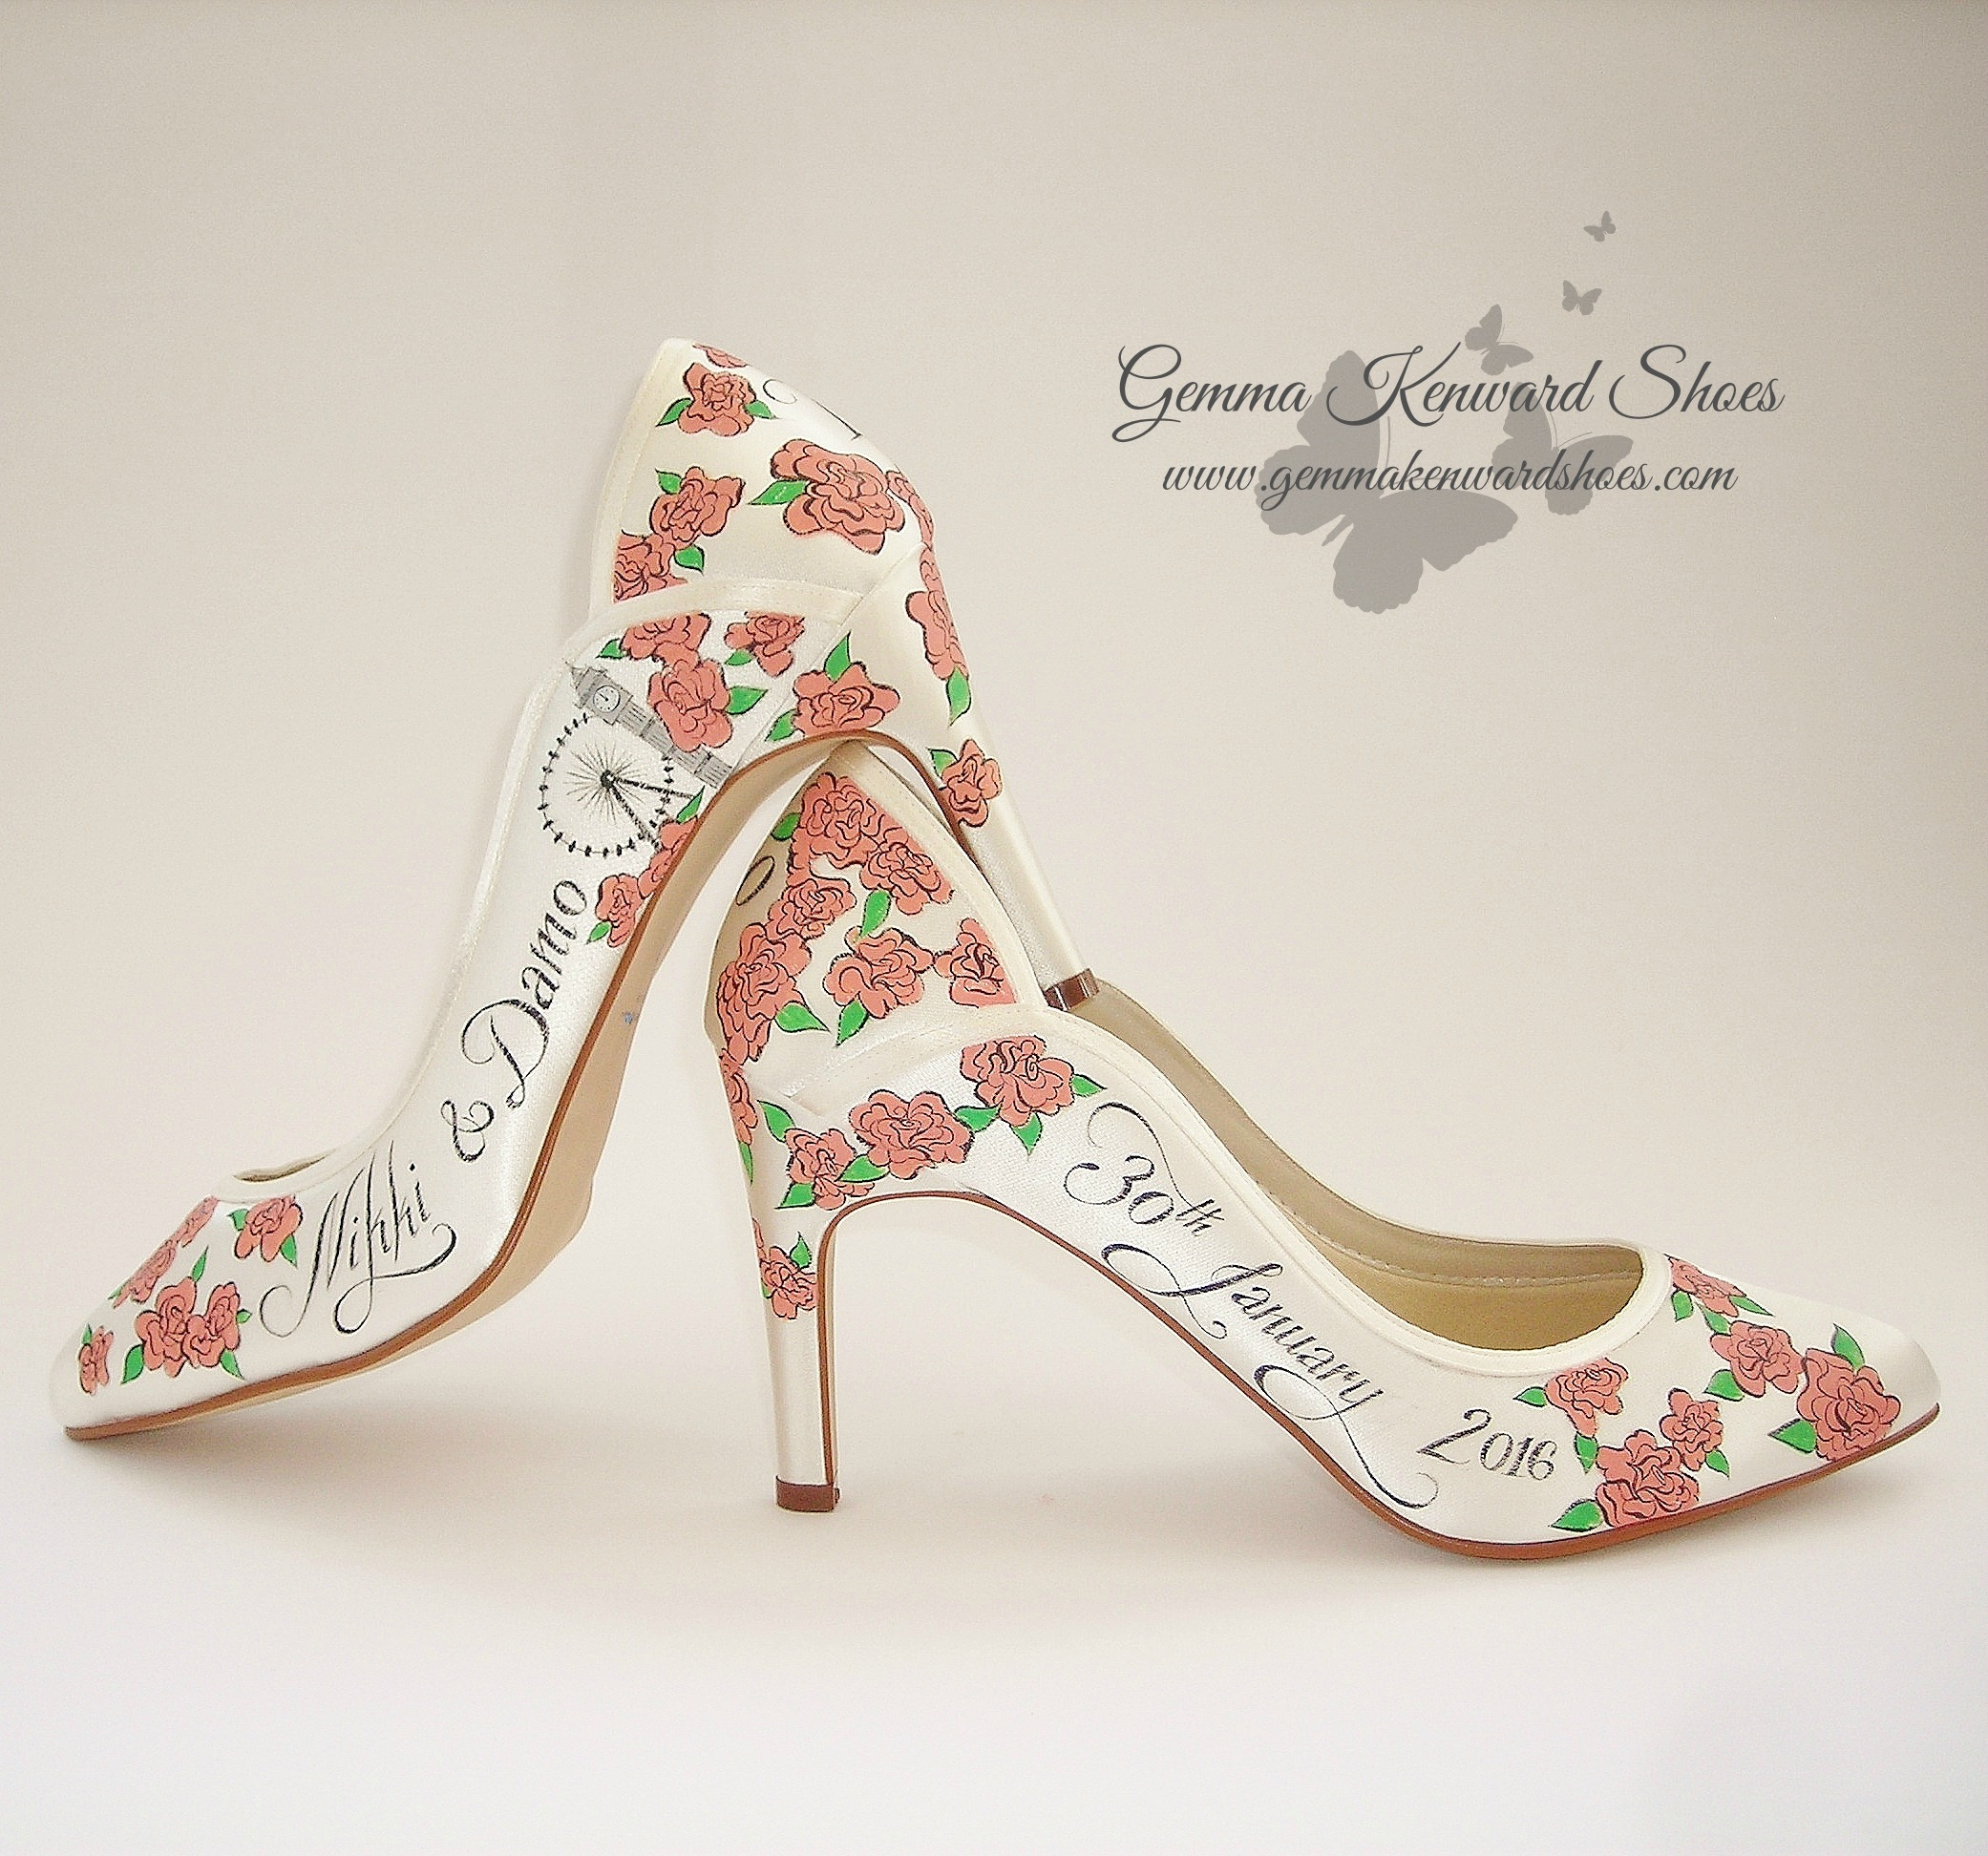 Ivory Rainbow Club wedding shoes hand painted with illustrations